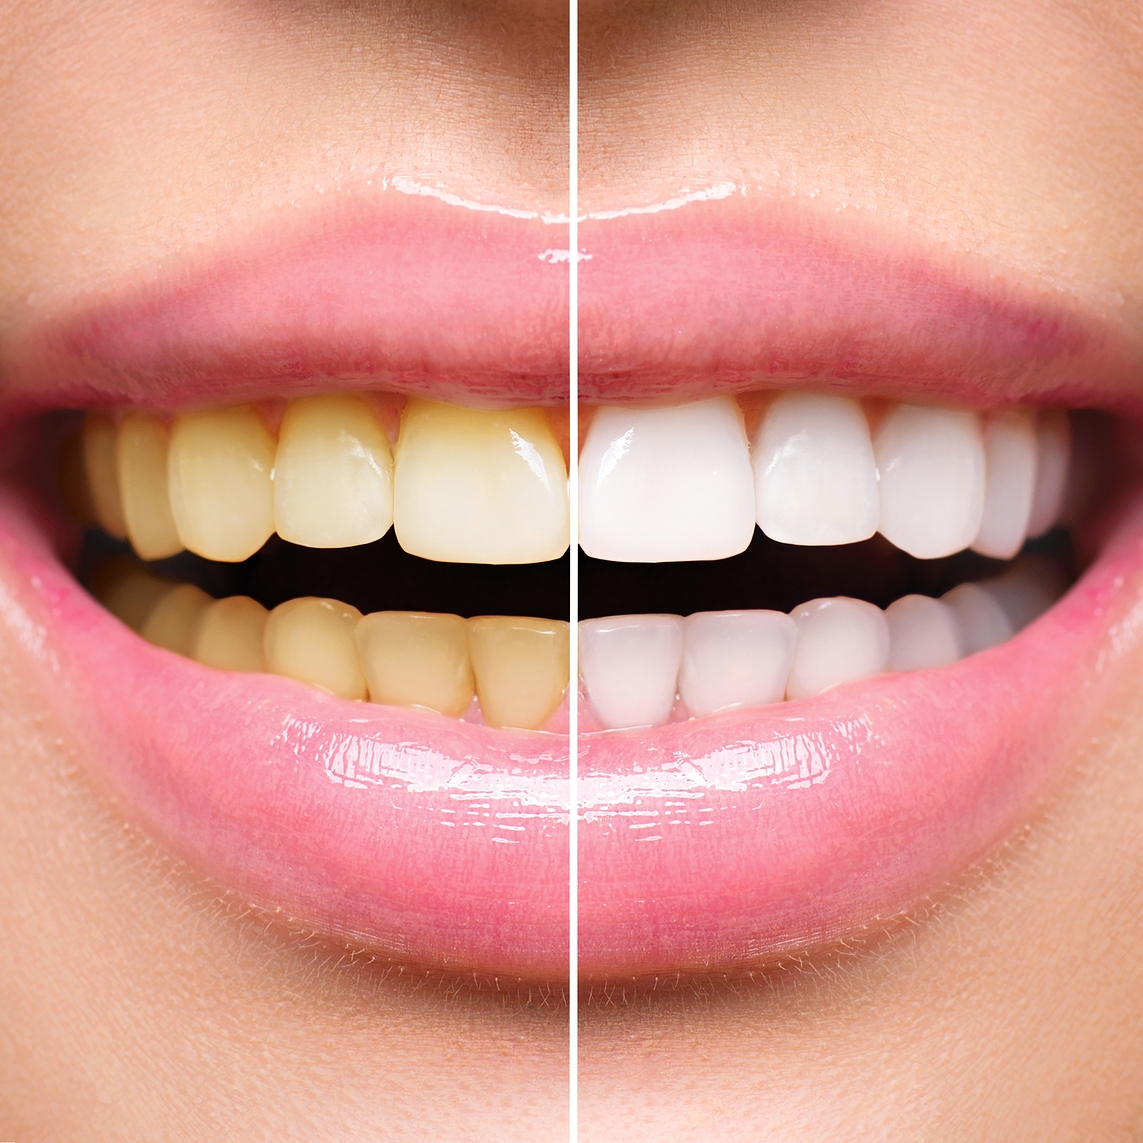 bigstock-Woman-Teeth-Before-and-After-W-136913312.jpg